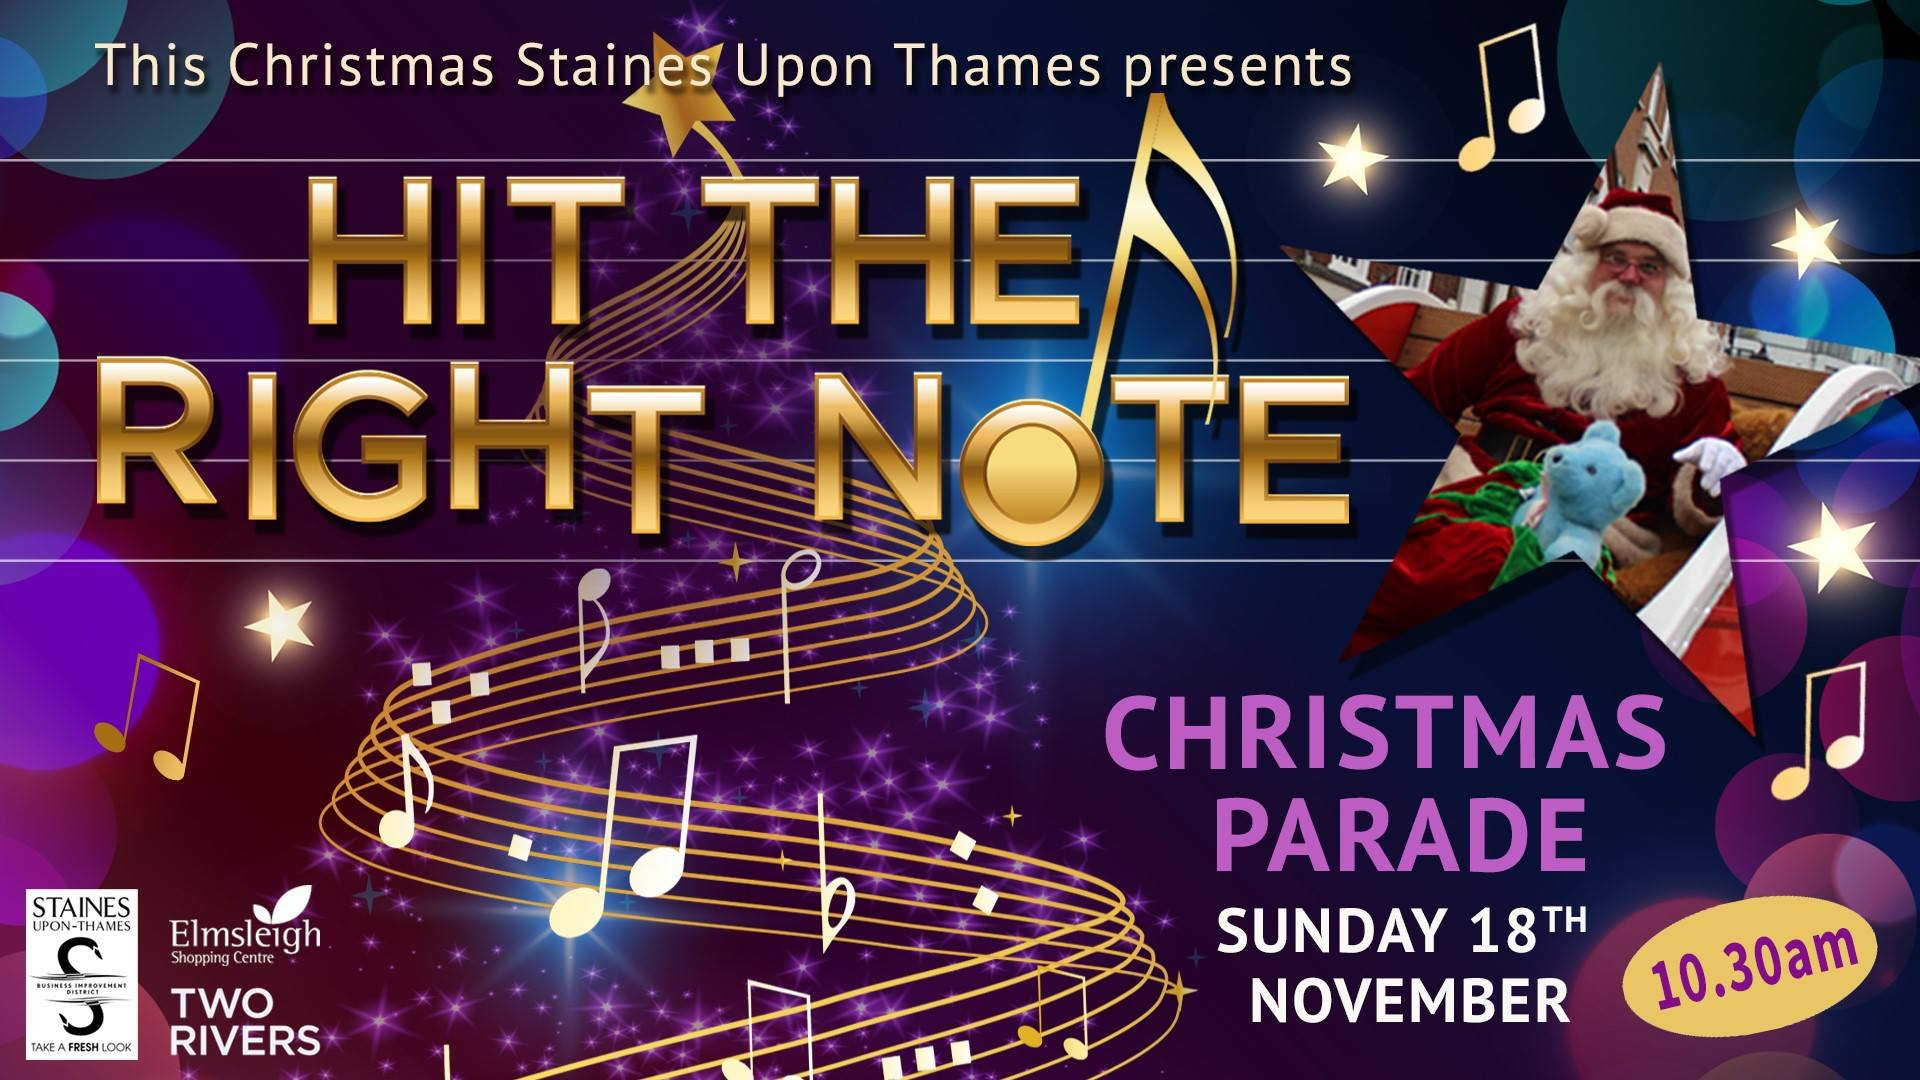 Christmas Parade in Staines-Upon-Thames